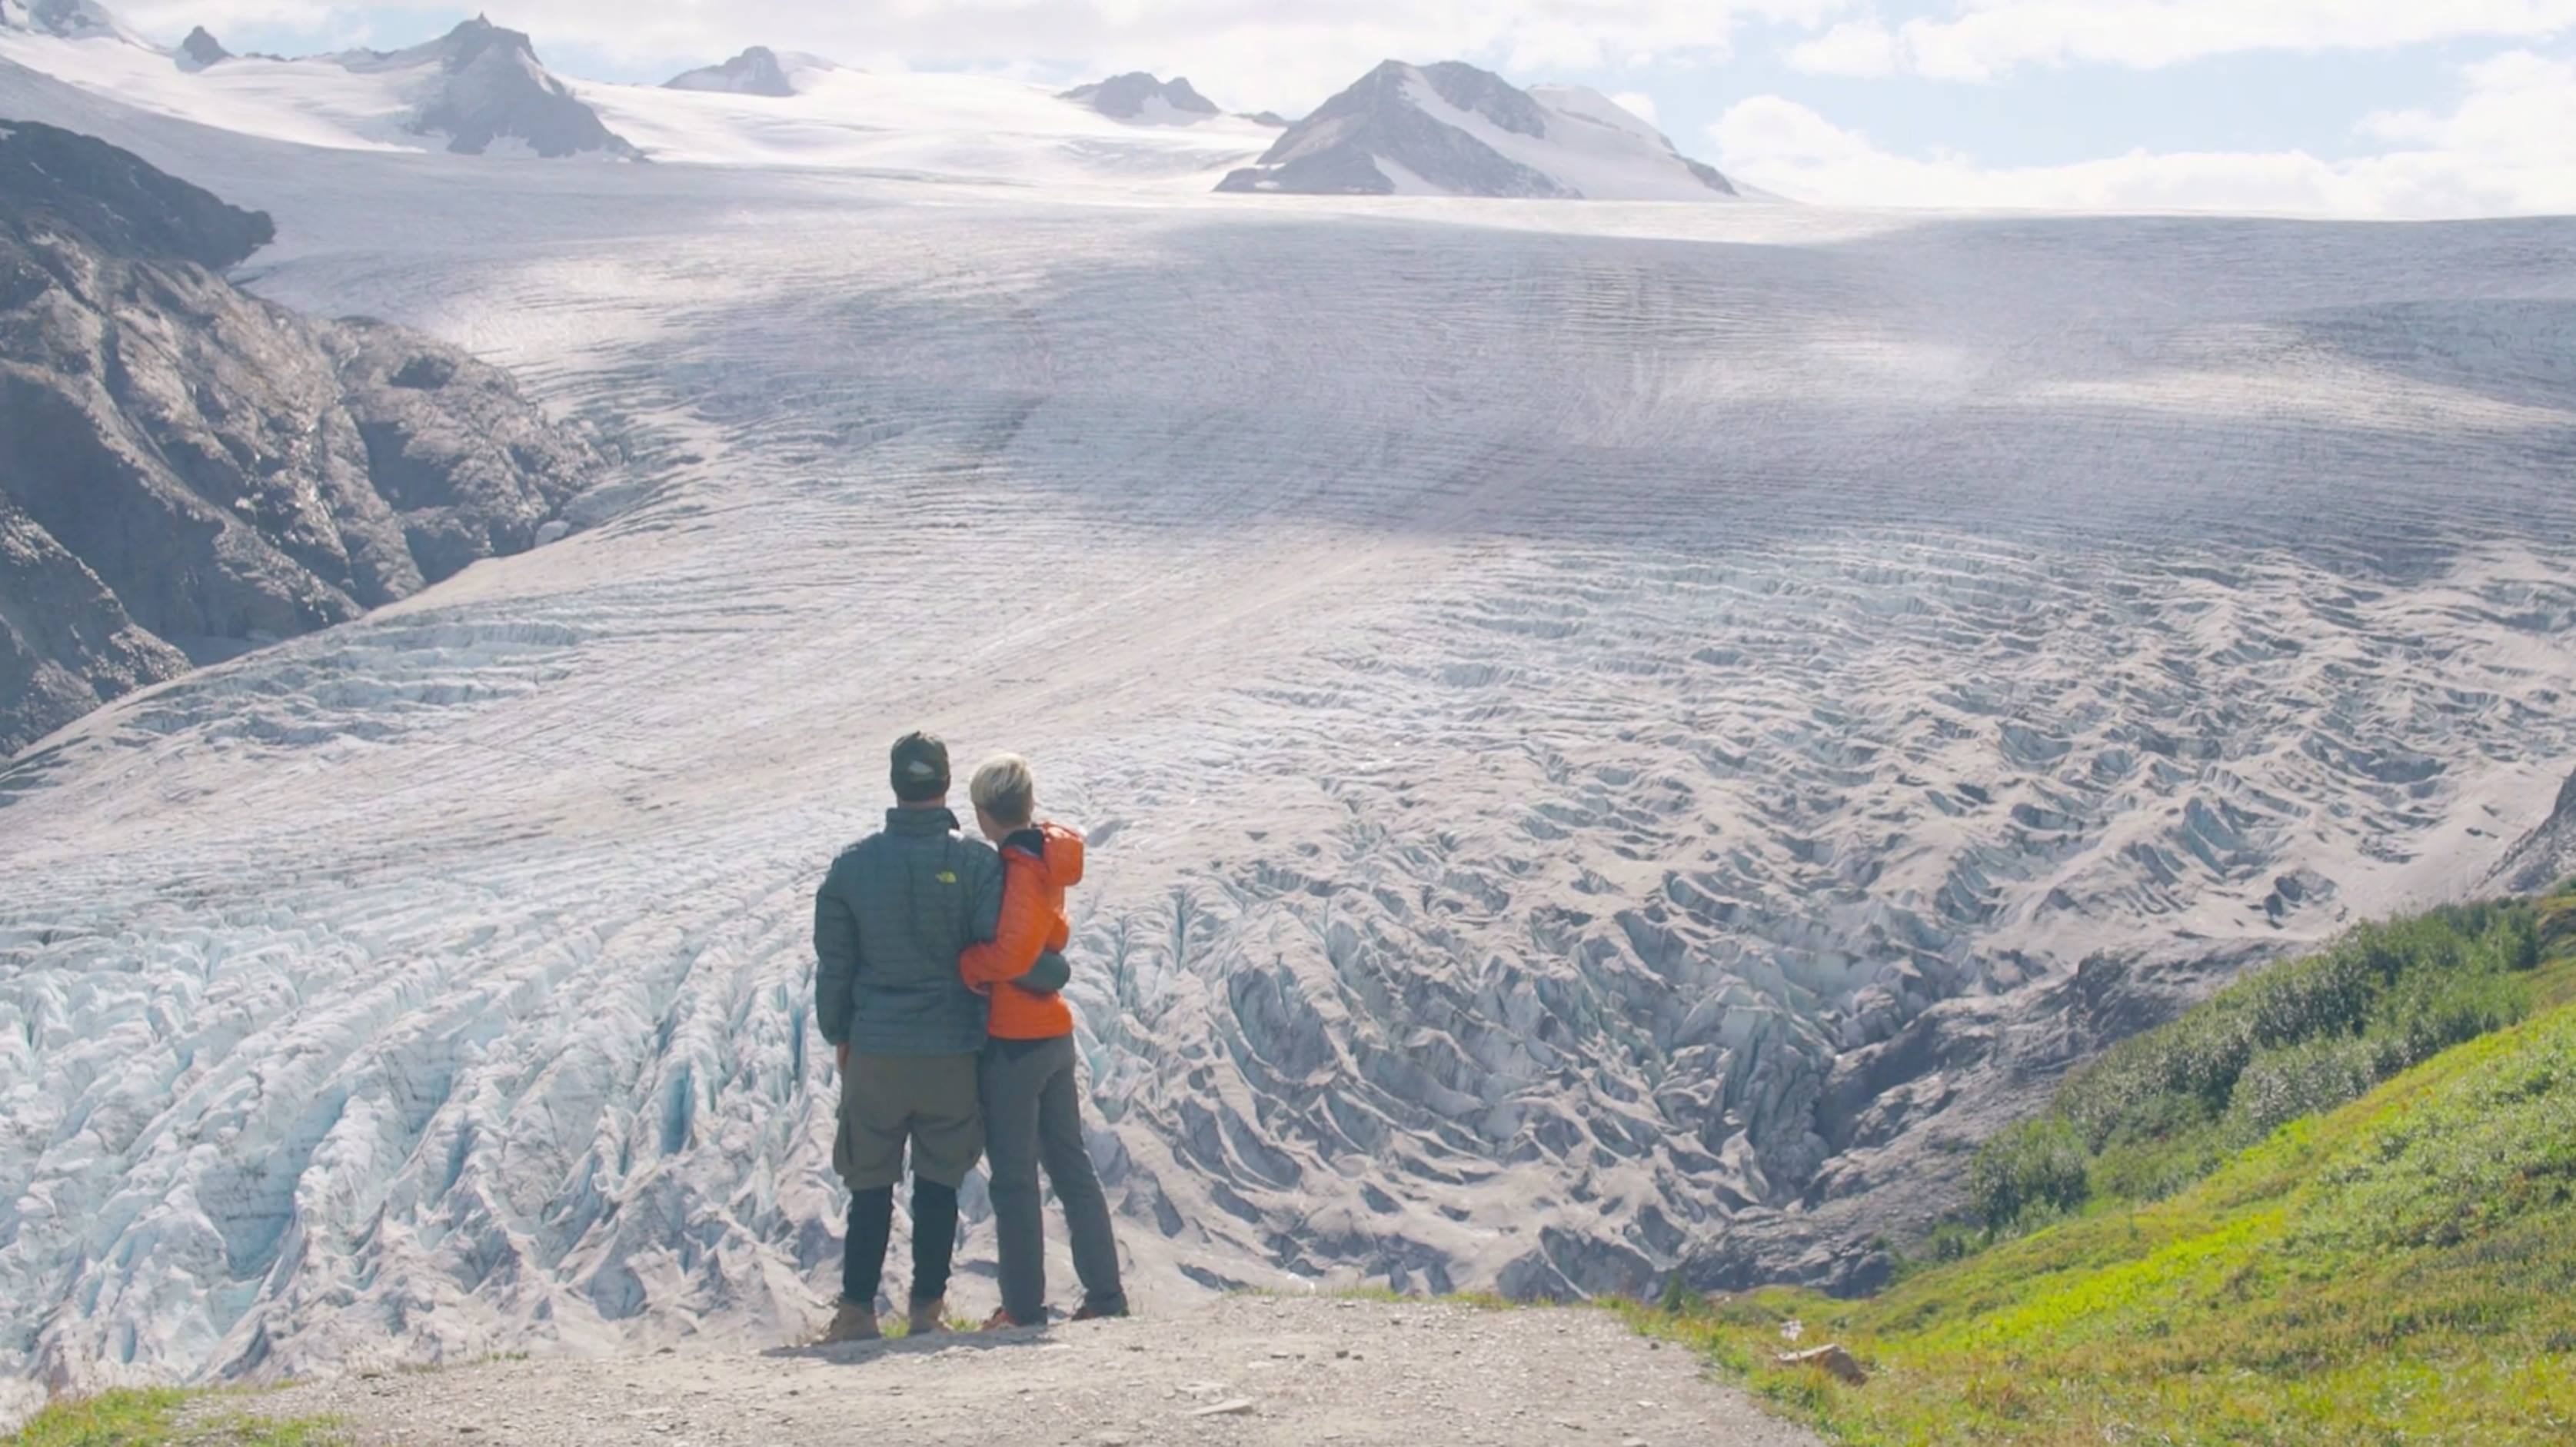 A Honeymoon in Alaska? Of course.